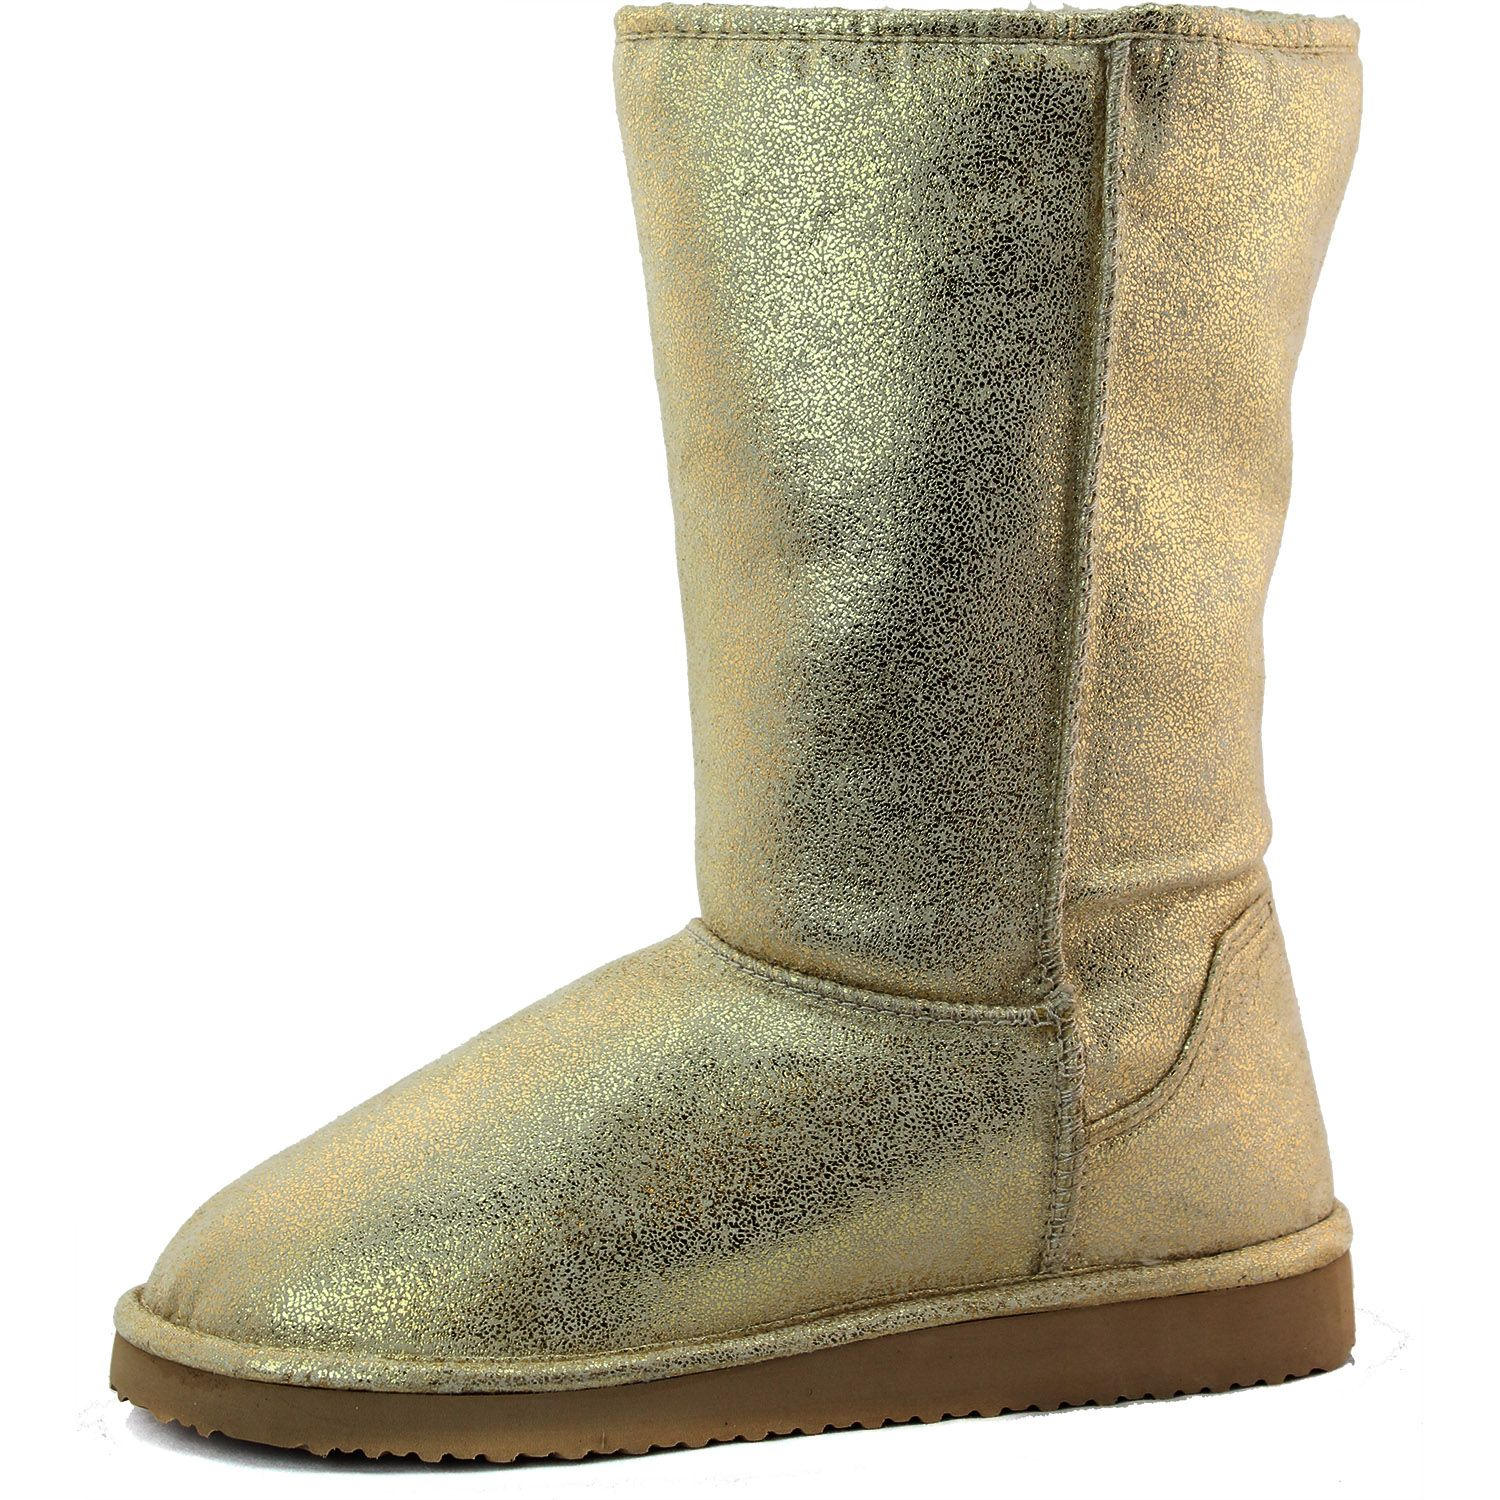 Save 10% + Free Shipping Offer *   Coupon Code: Pinterest10 Material: Man Made Material Brand: Soda Footwear Product Code: Song-S Gold Color Keep your feet warm in these man made material causal winter boots, featuring comforle flat heel for easy wear. Slip on like a pair of socks. Women's Soda Song-S Gold Metallic Warm Flat Heel Boots